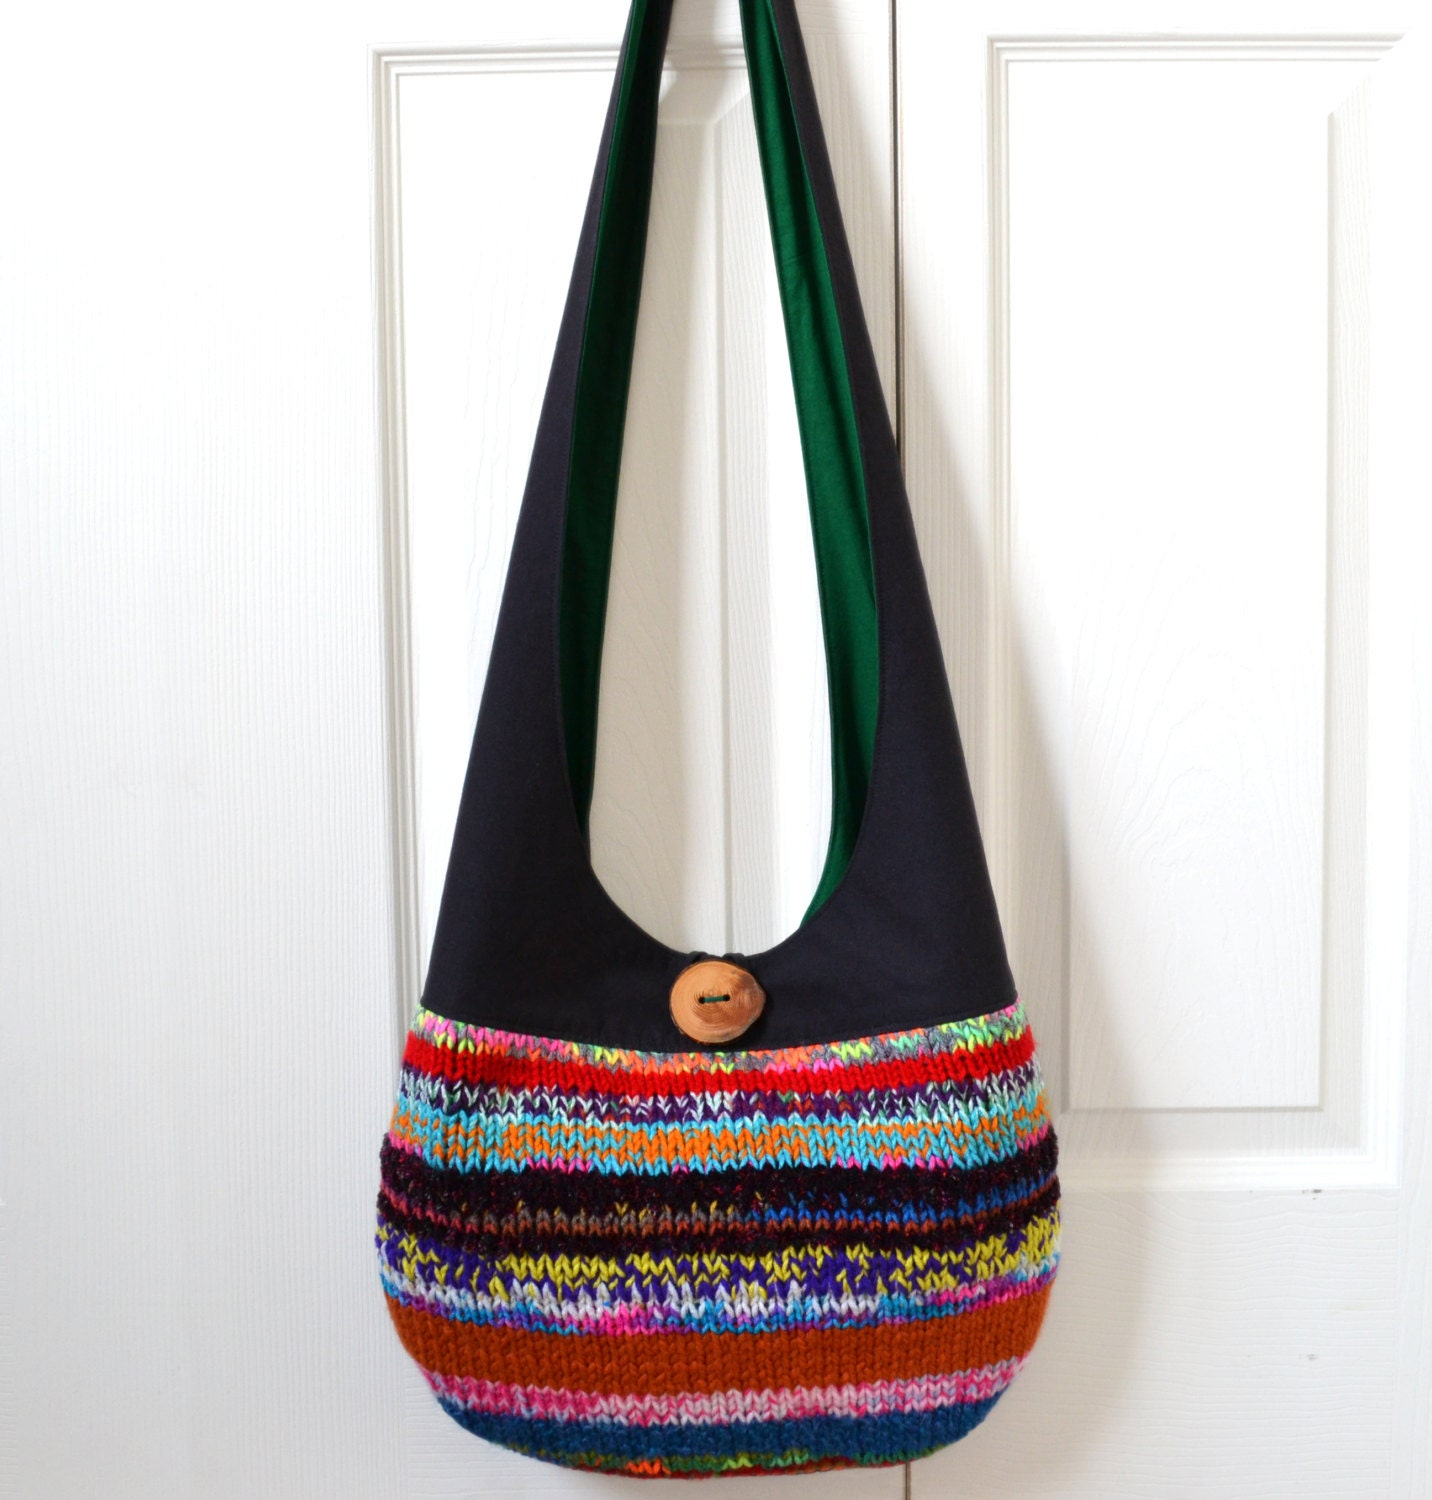 Knitted Sling Bag : Hobo Bag Sling Bag Knitted Patchwork Neon Colorful by 2LeftHandz